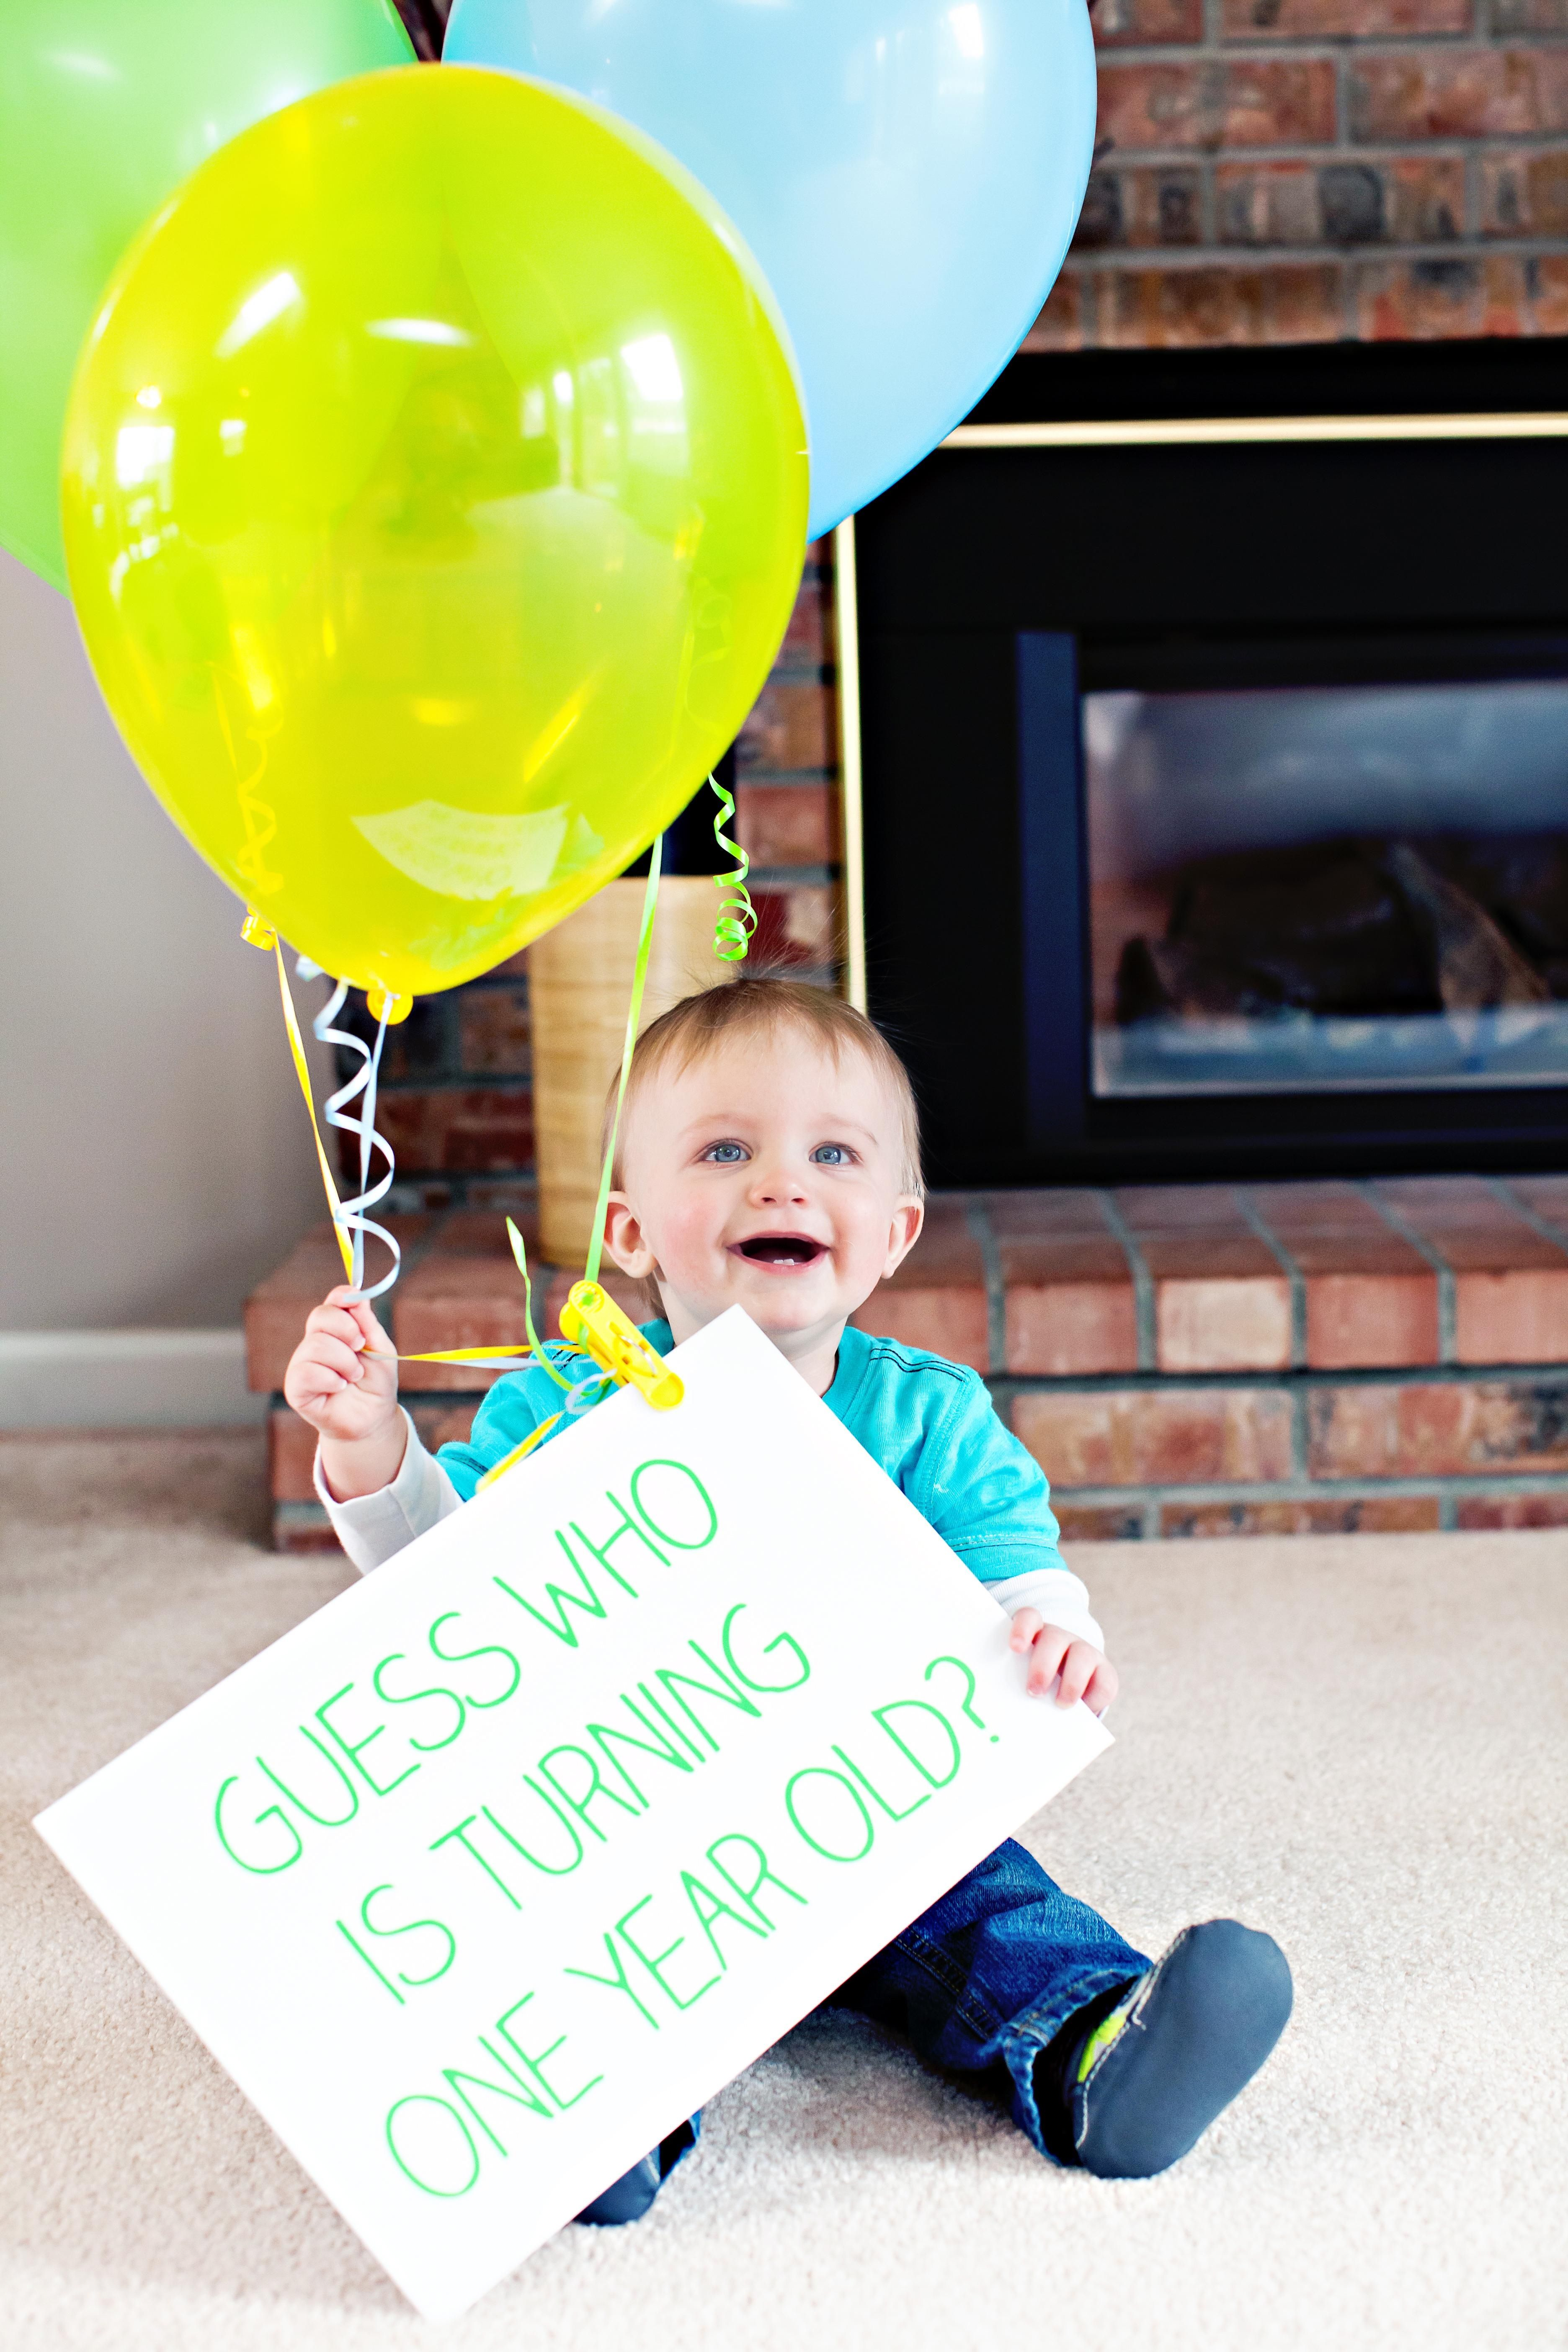 Save money on your birthday invites! Take a photo of your